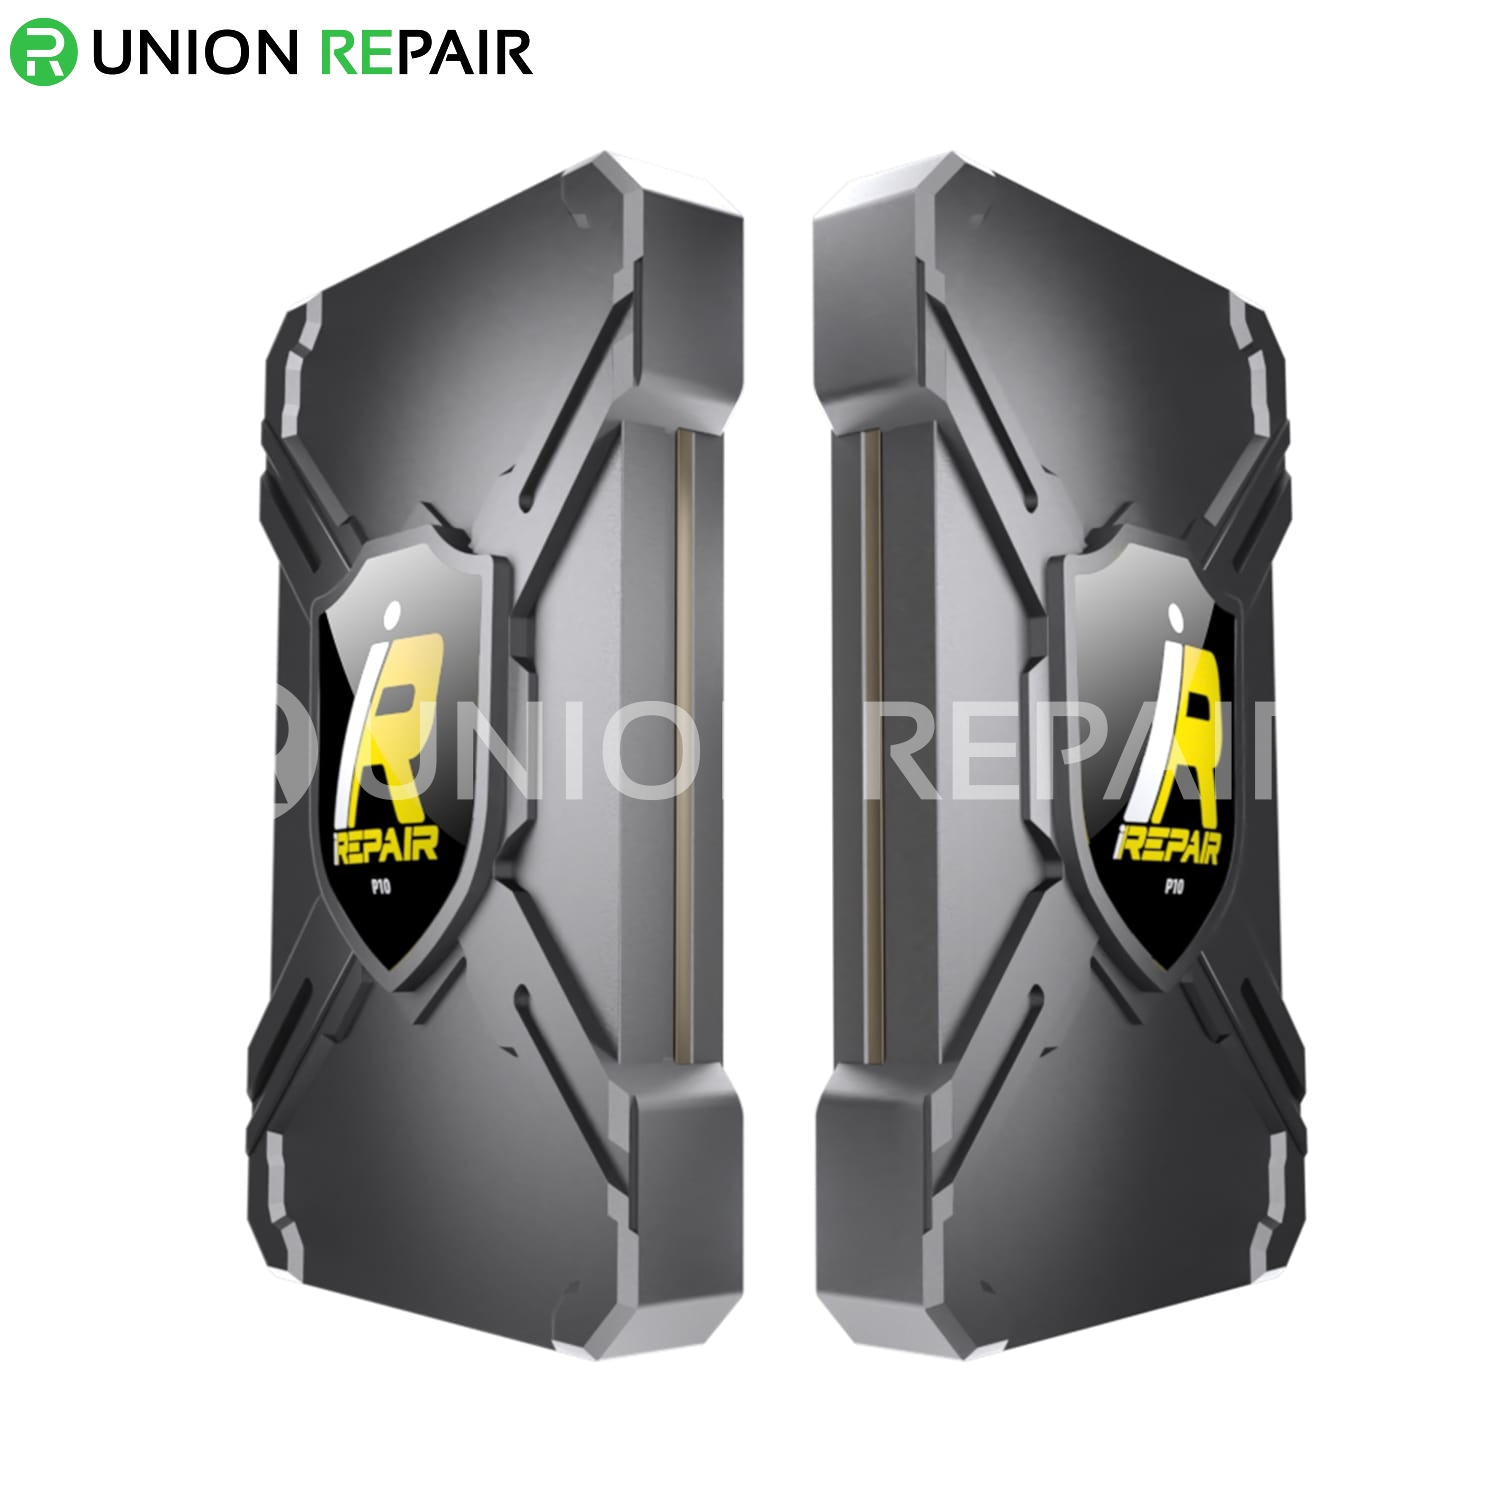 iRepair P10 DFU Box